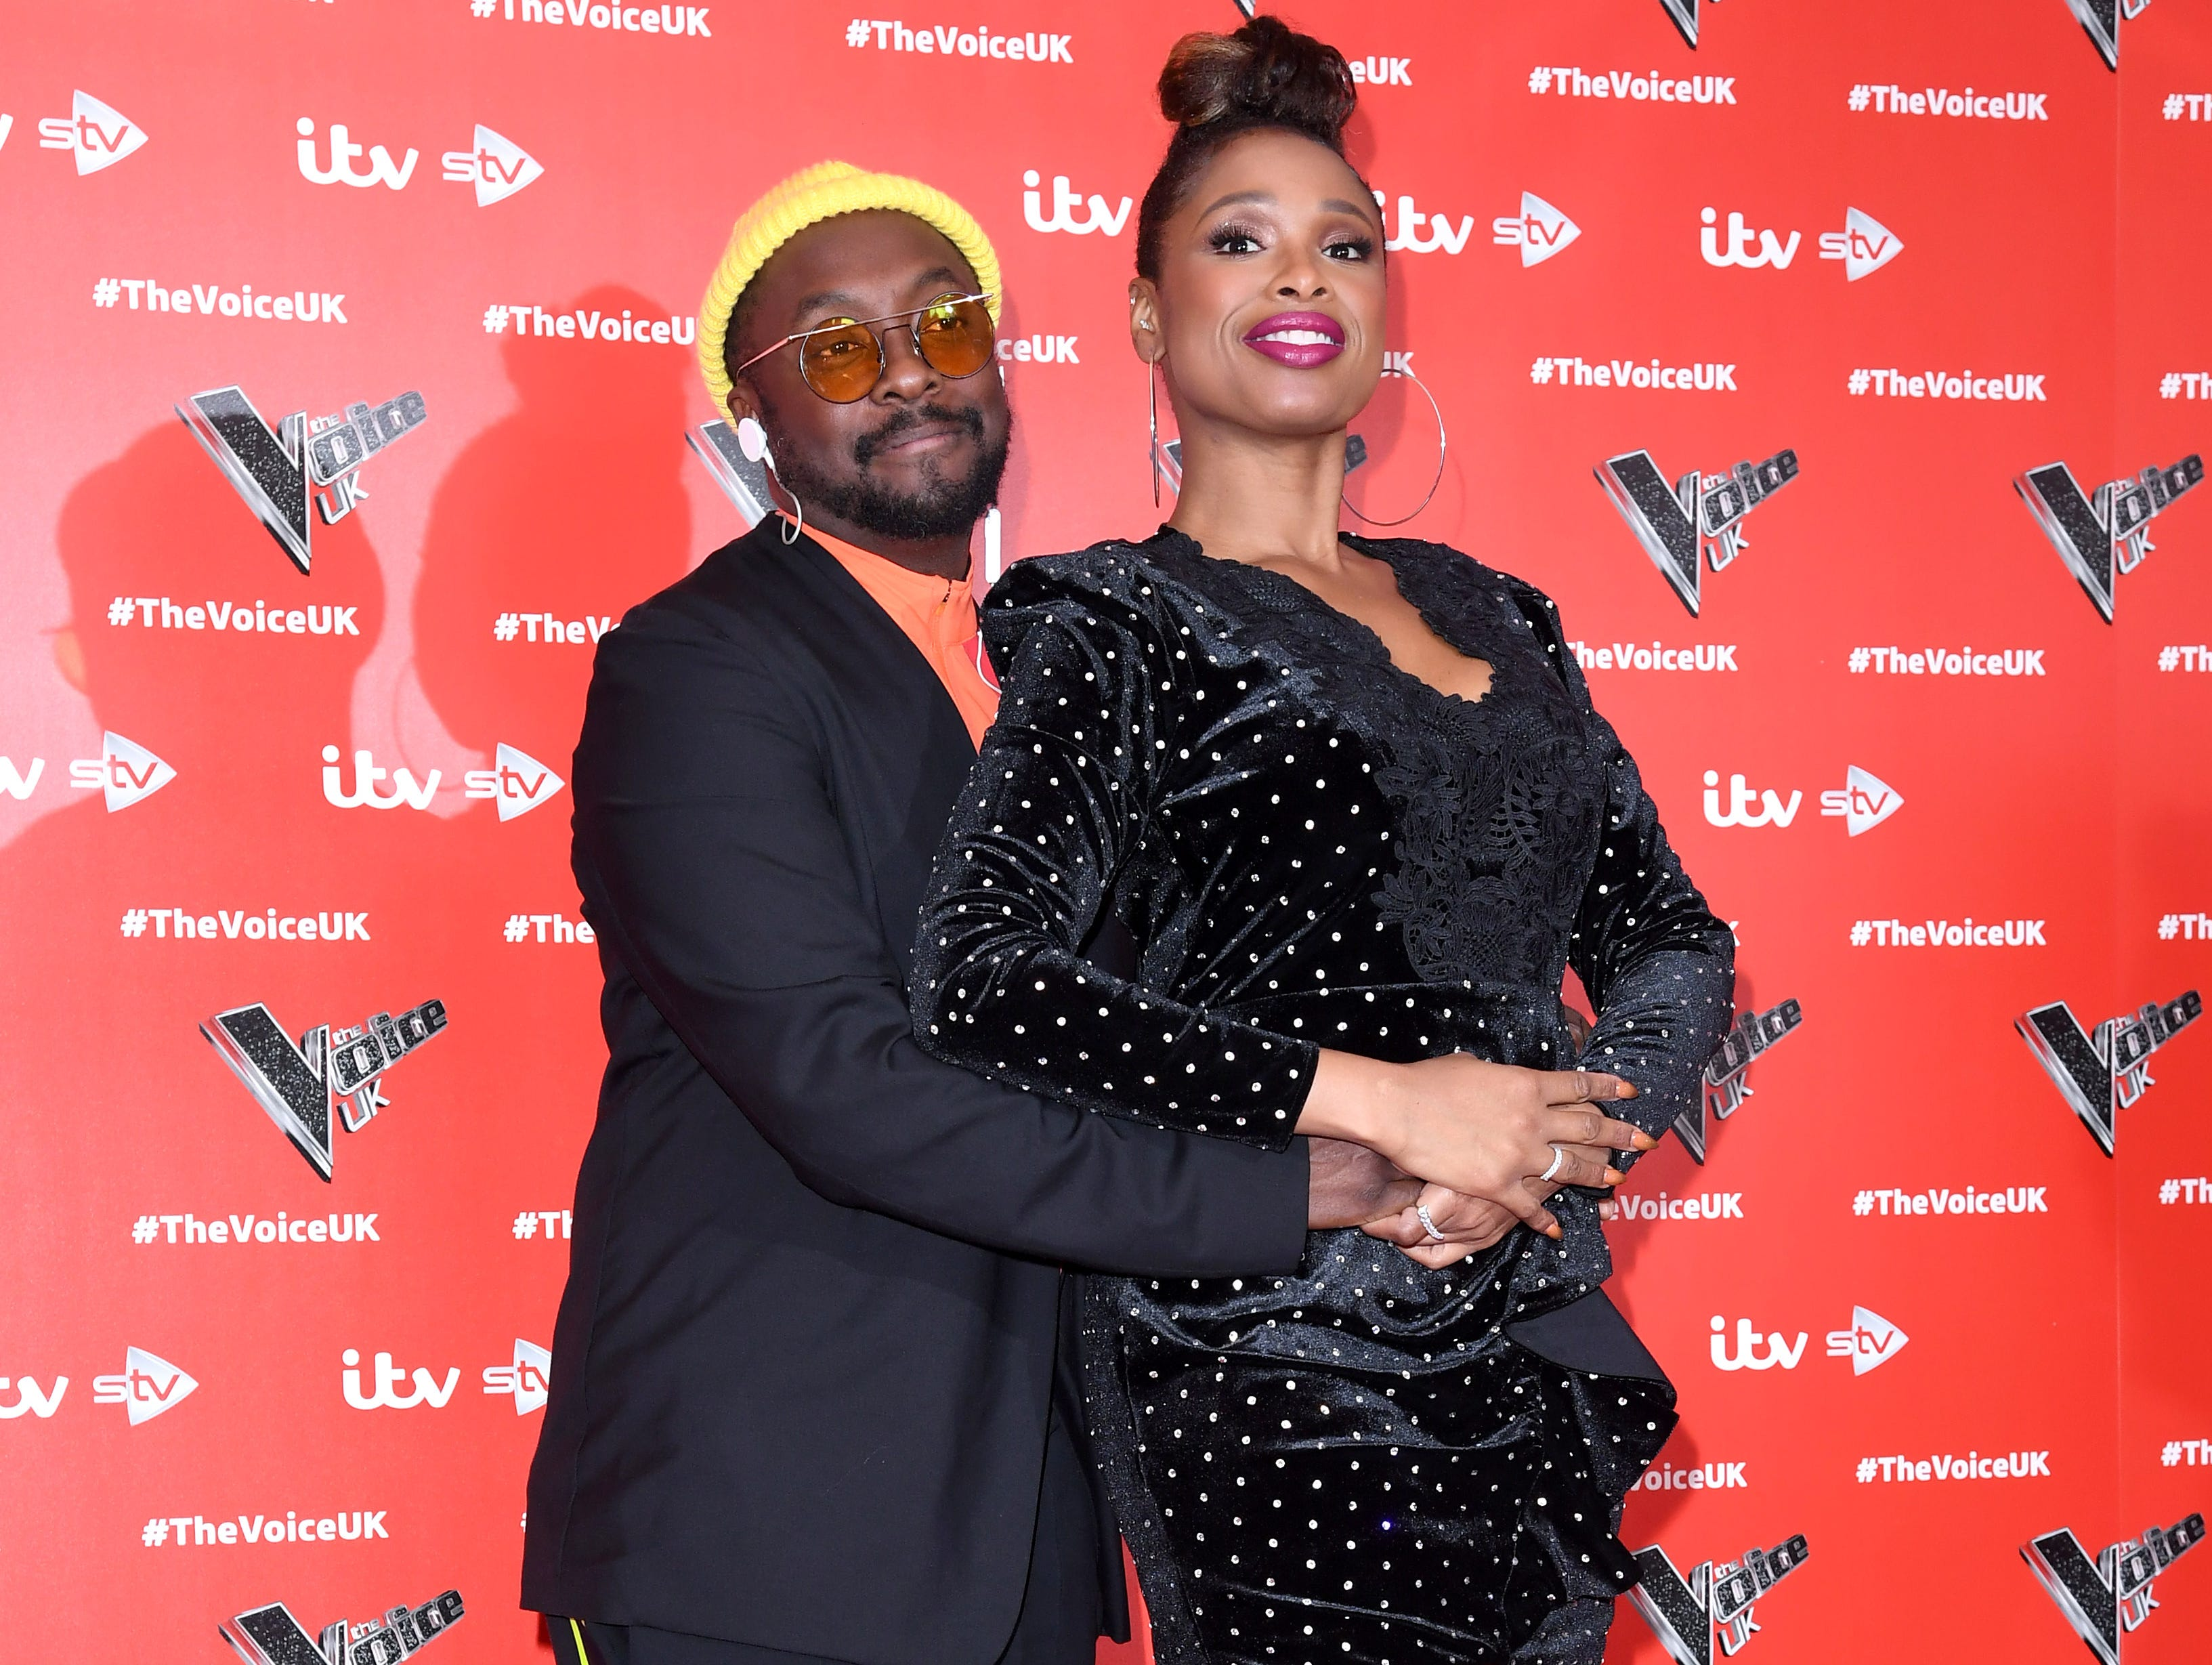 LONDON, ENGLAND - JANUARY 03:  Will.i.am and Jennifer Hudson attend The Voice UK 2019 launch at W Hotel, Leicester Sq on January 3, 2019 in London, England.  (Photo by Karwai Tang/WireImage) ORG XMIT: 775276623 ORIG FILE ID: 1076635562